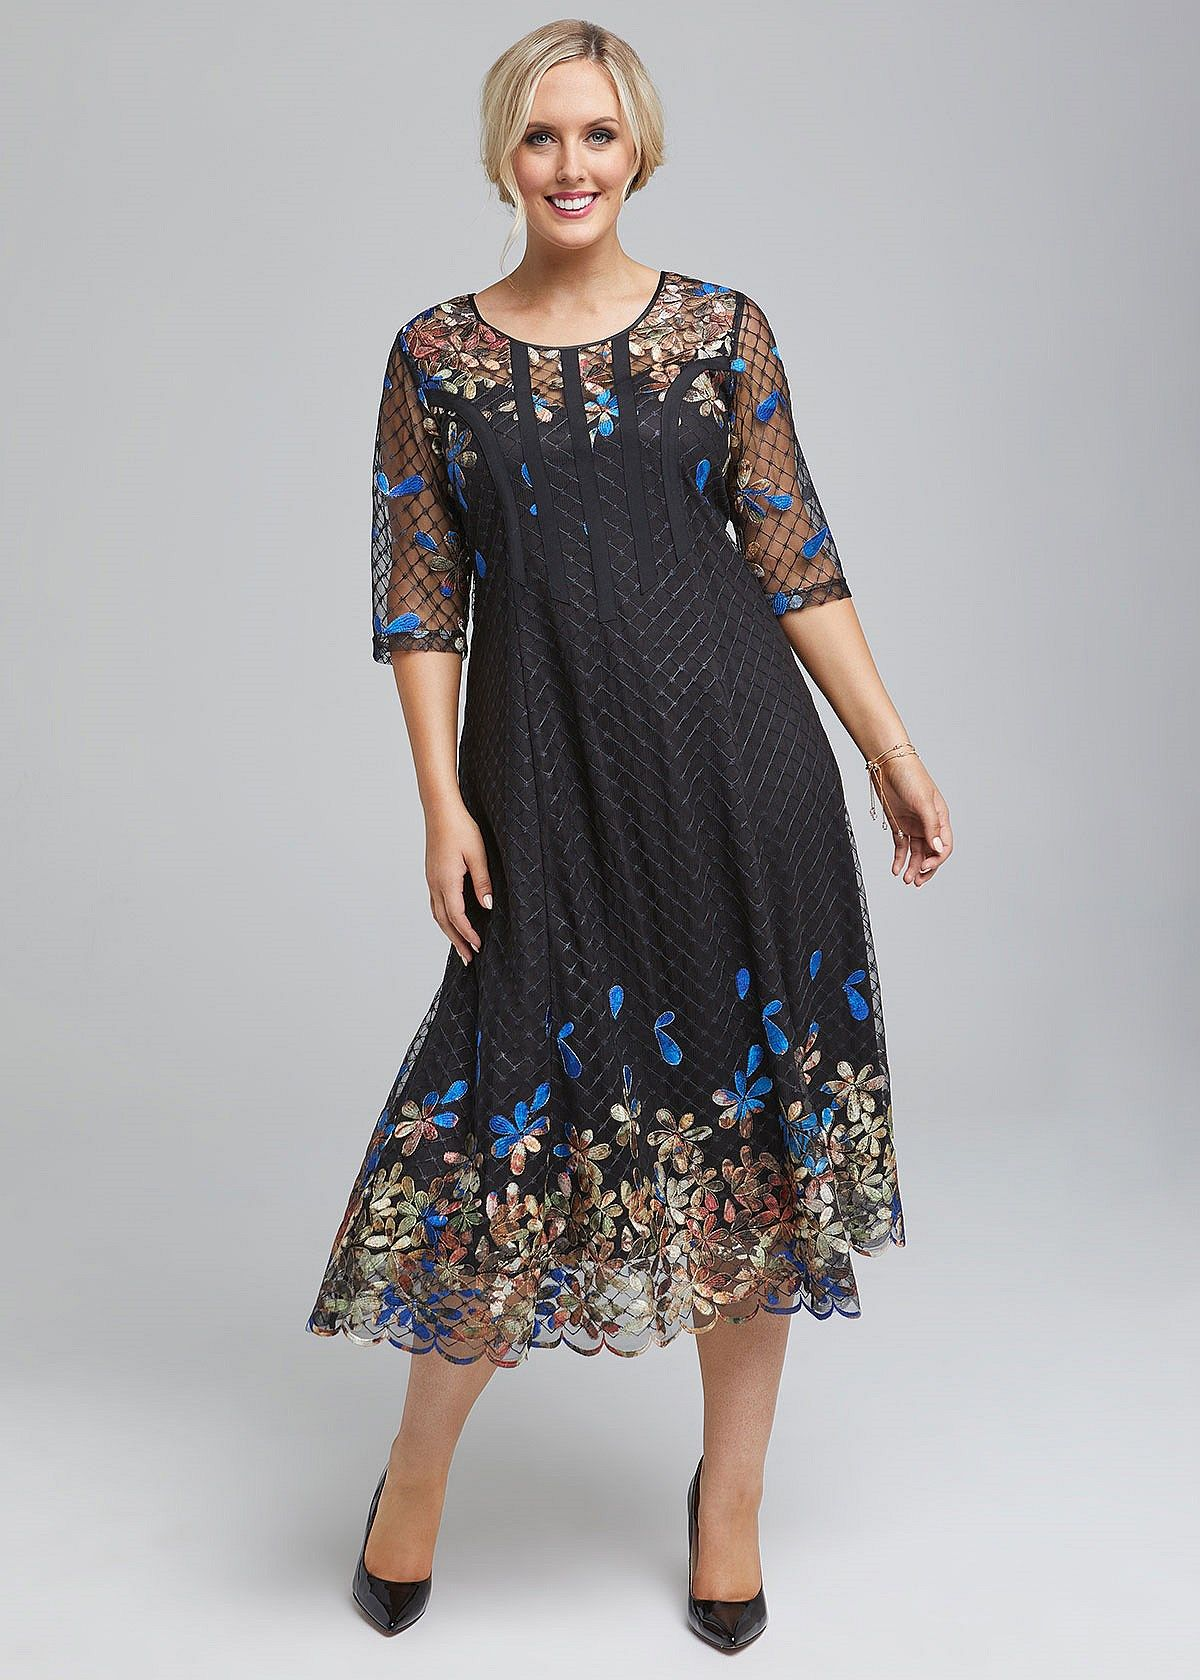 Plus Size Gypsy Clothes Australia